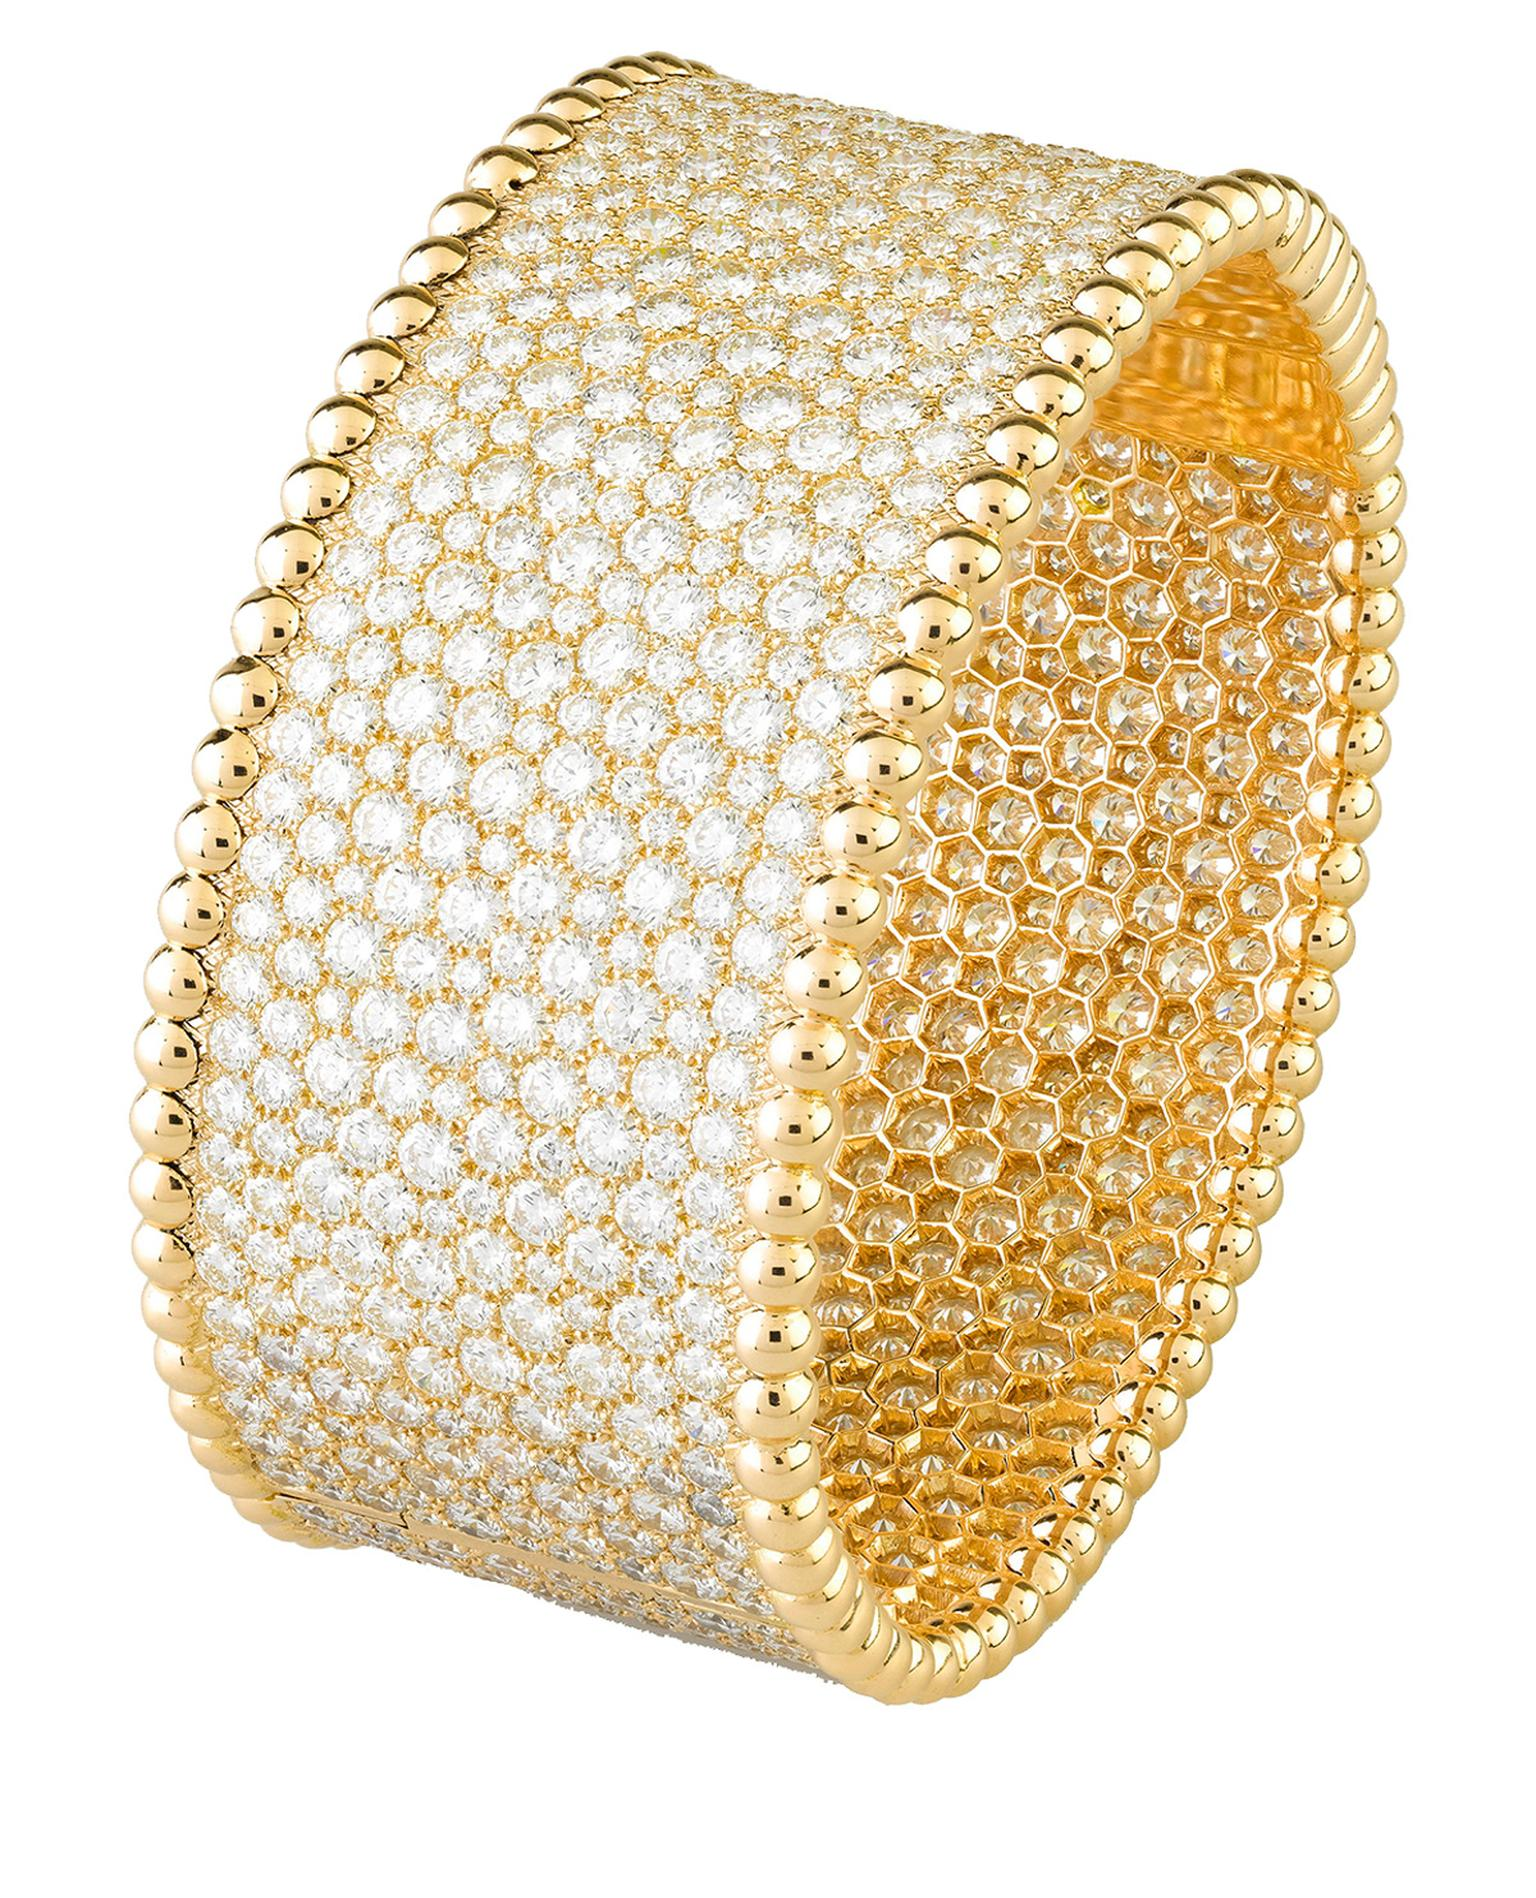 Van Cleef & Arpels Perlée yellow gold and snow-set diamond bracelet_20131003_Zoom